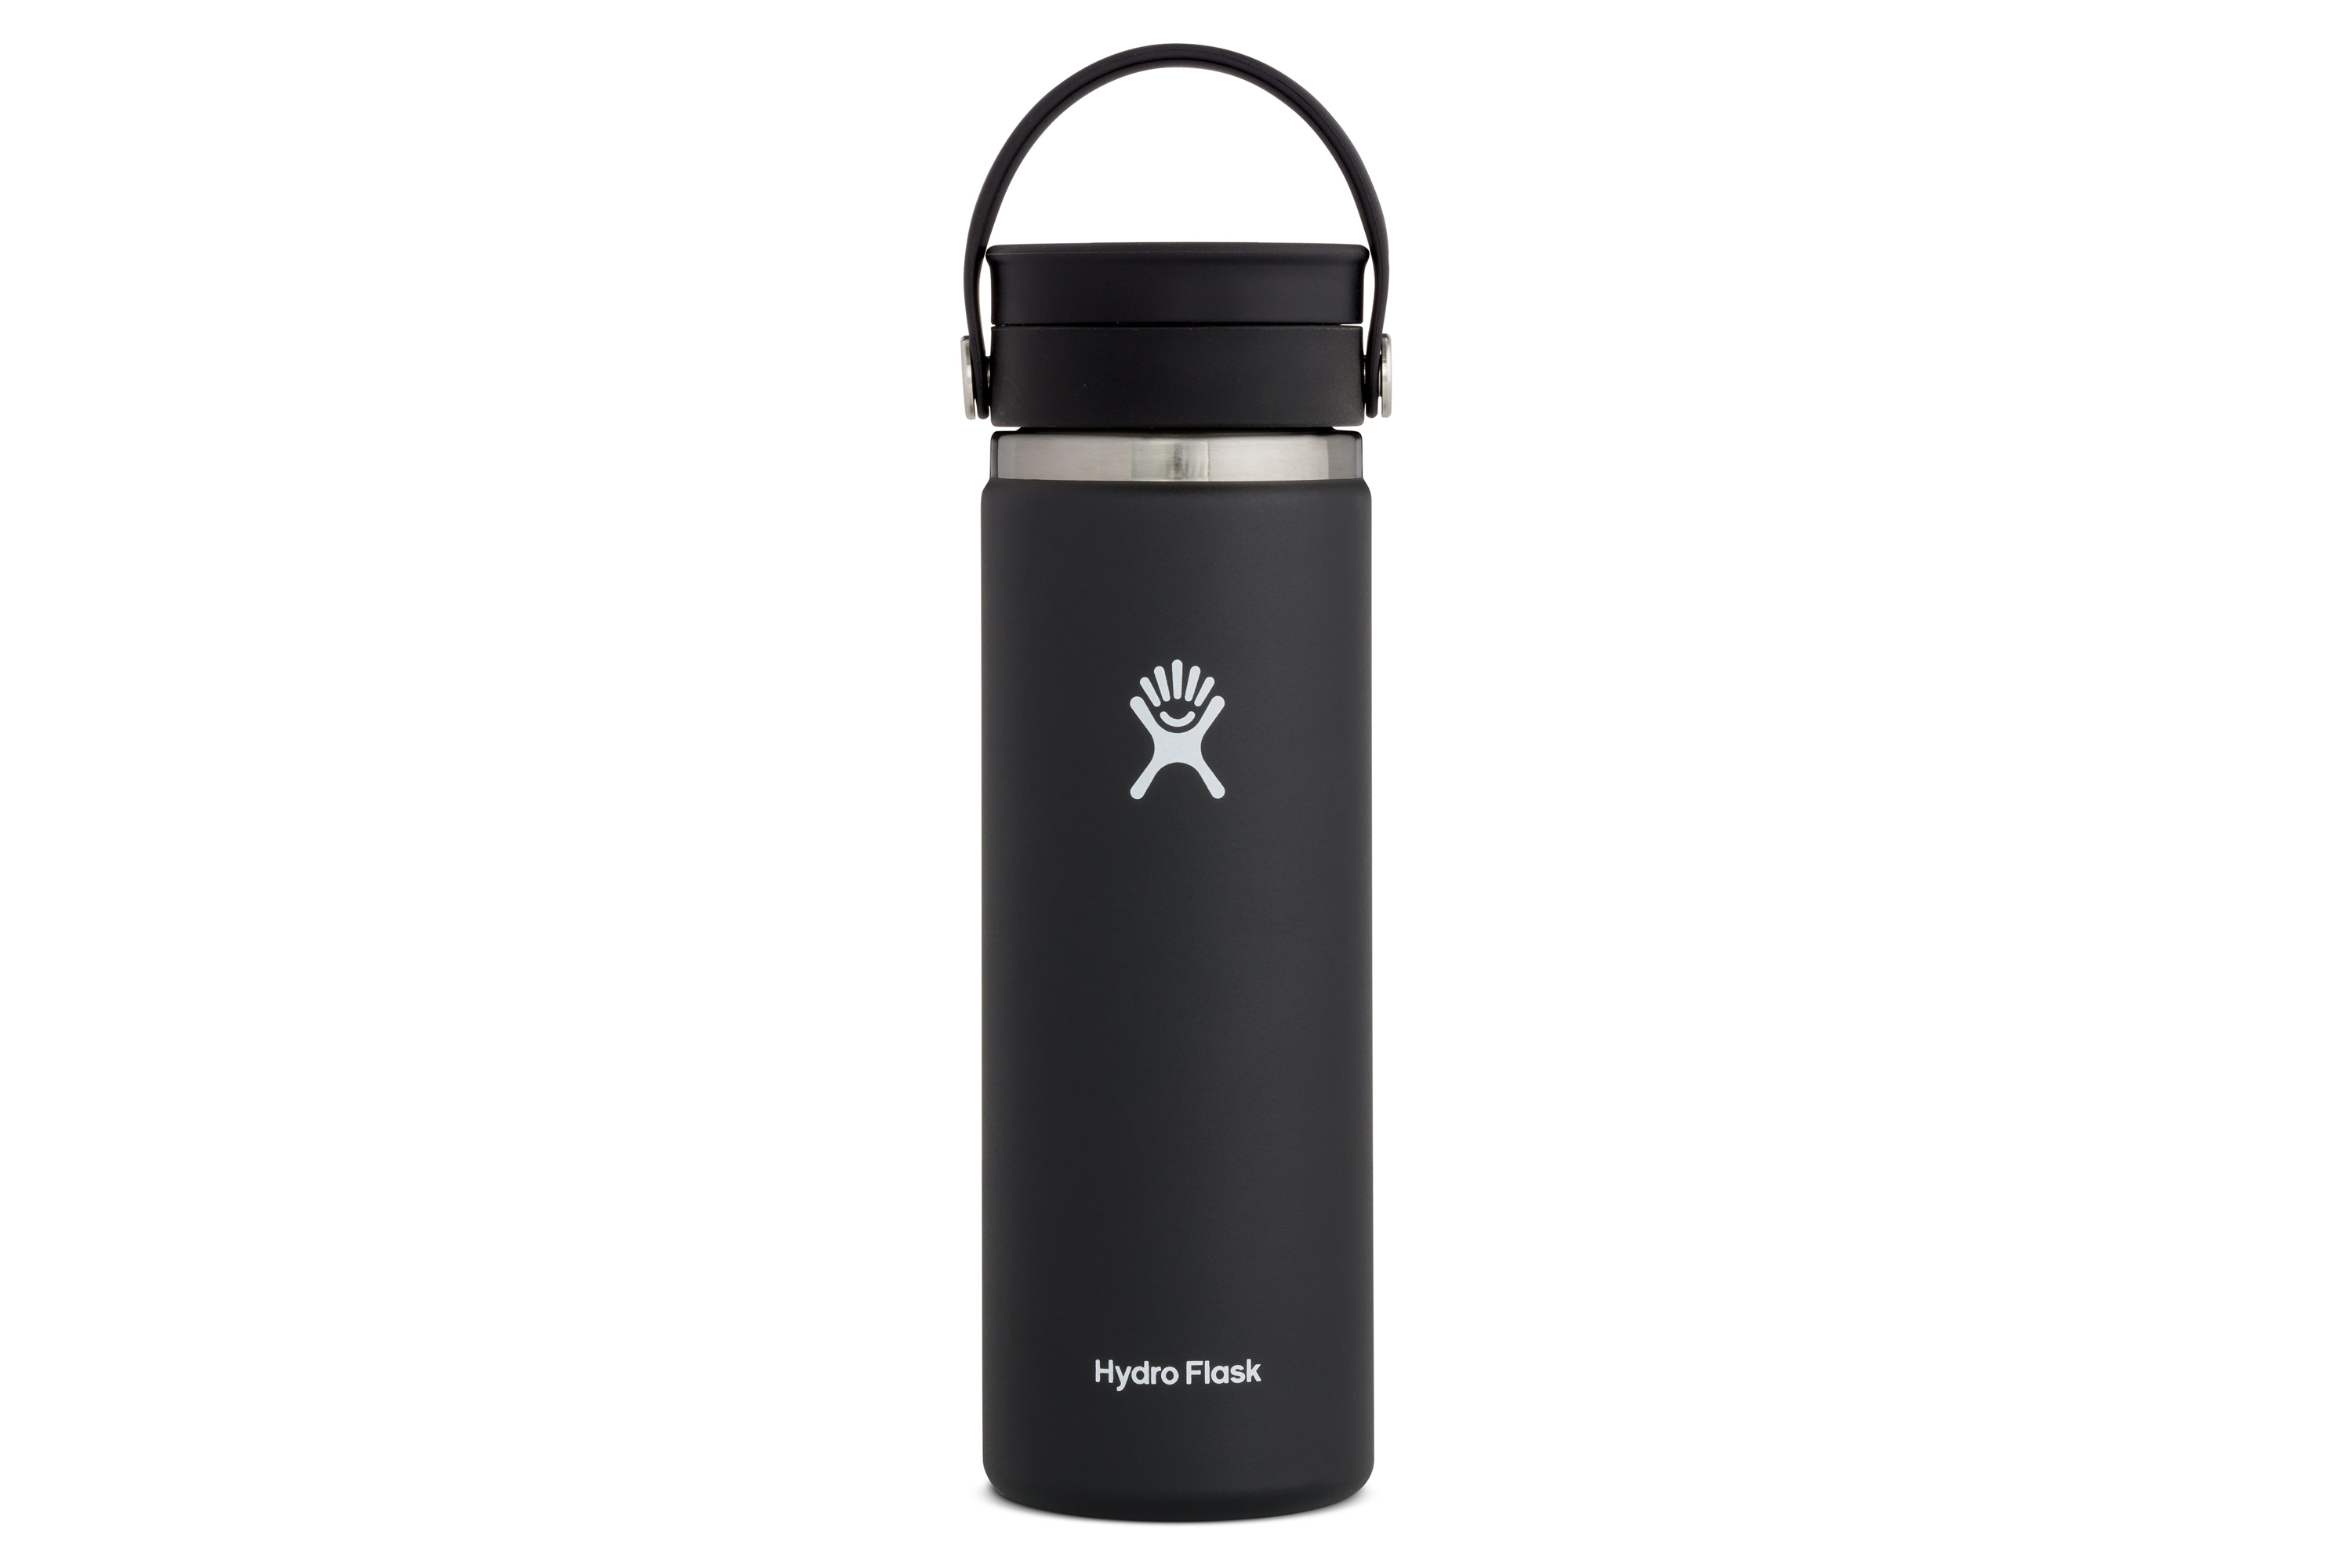 a black Hydro Flask 20-Ounce Coffee Flask with Flex Sip Lid on a white background